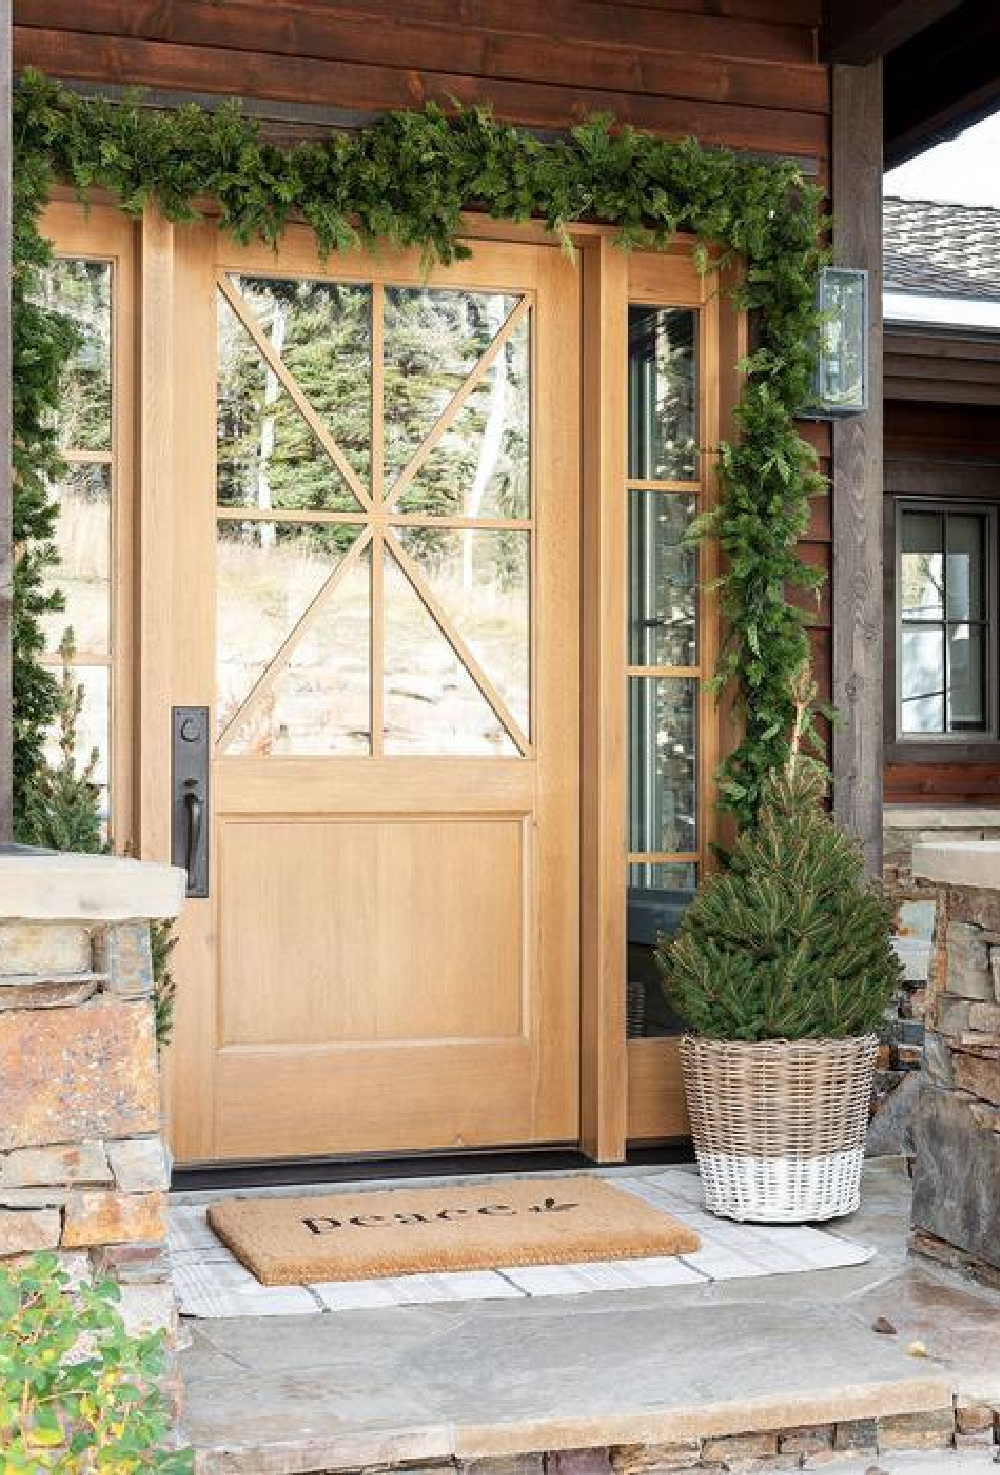 Gorgeous rustic wood front door, garland, peace door mat layered on plaid rug - McGee & Co.